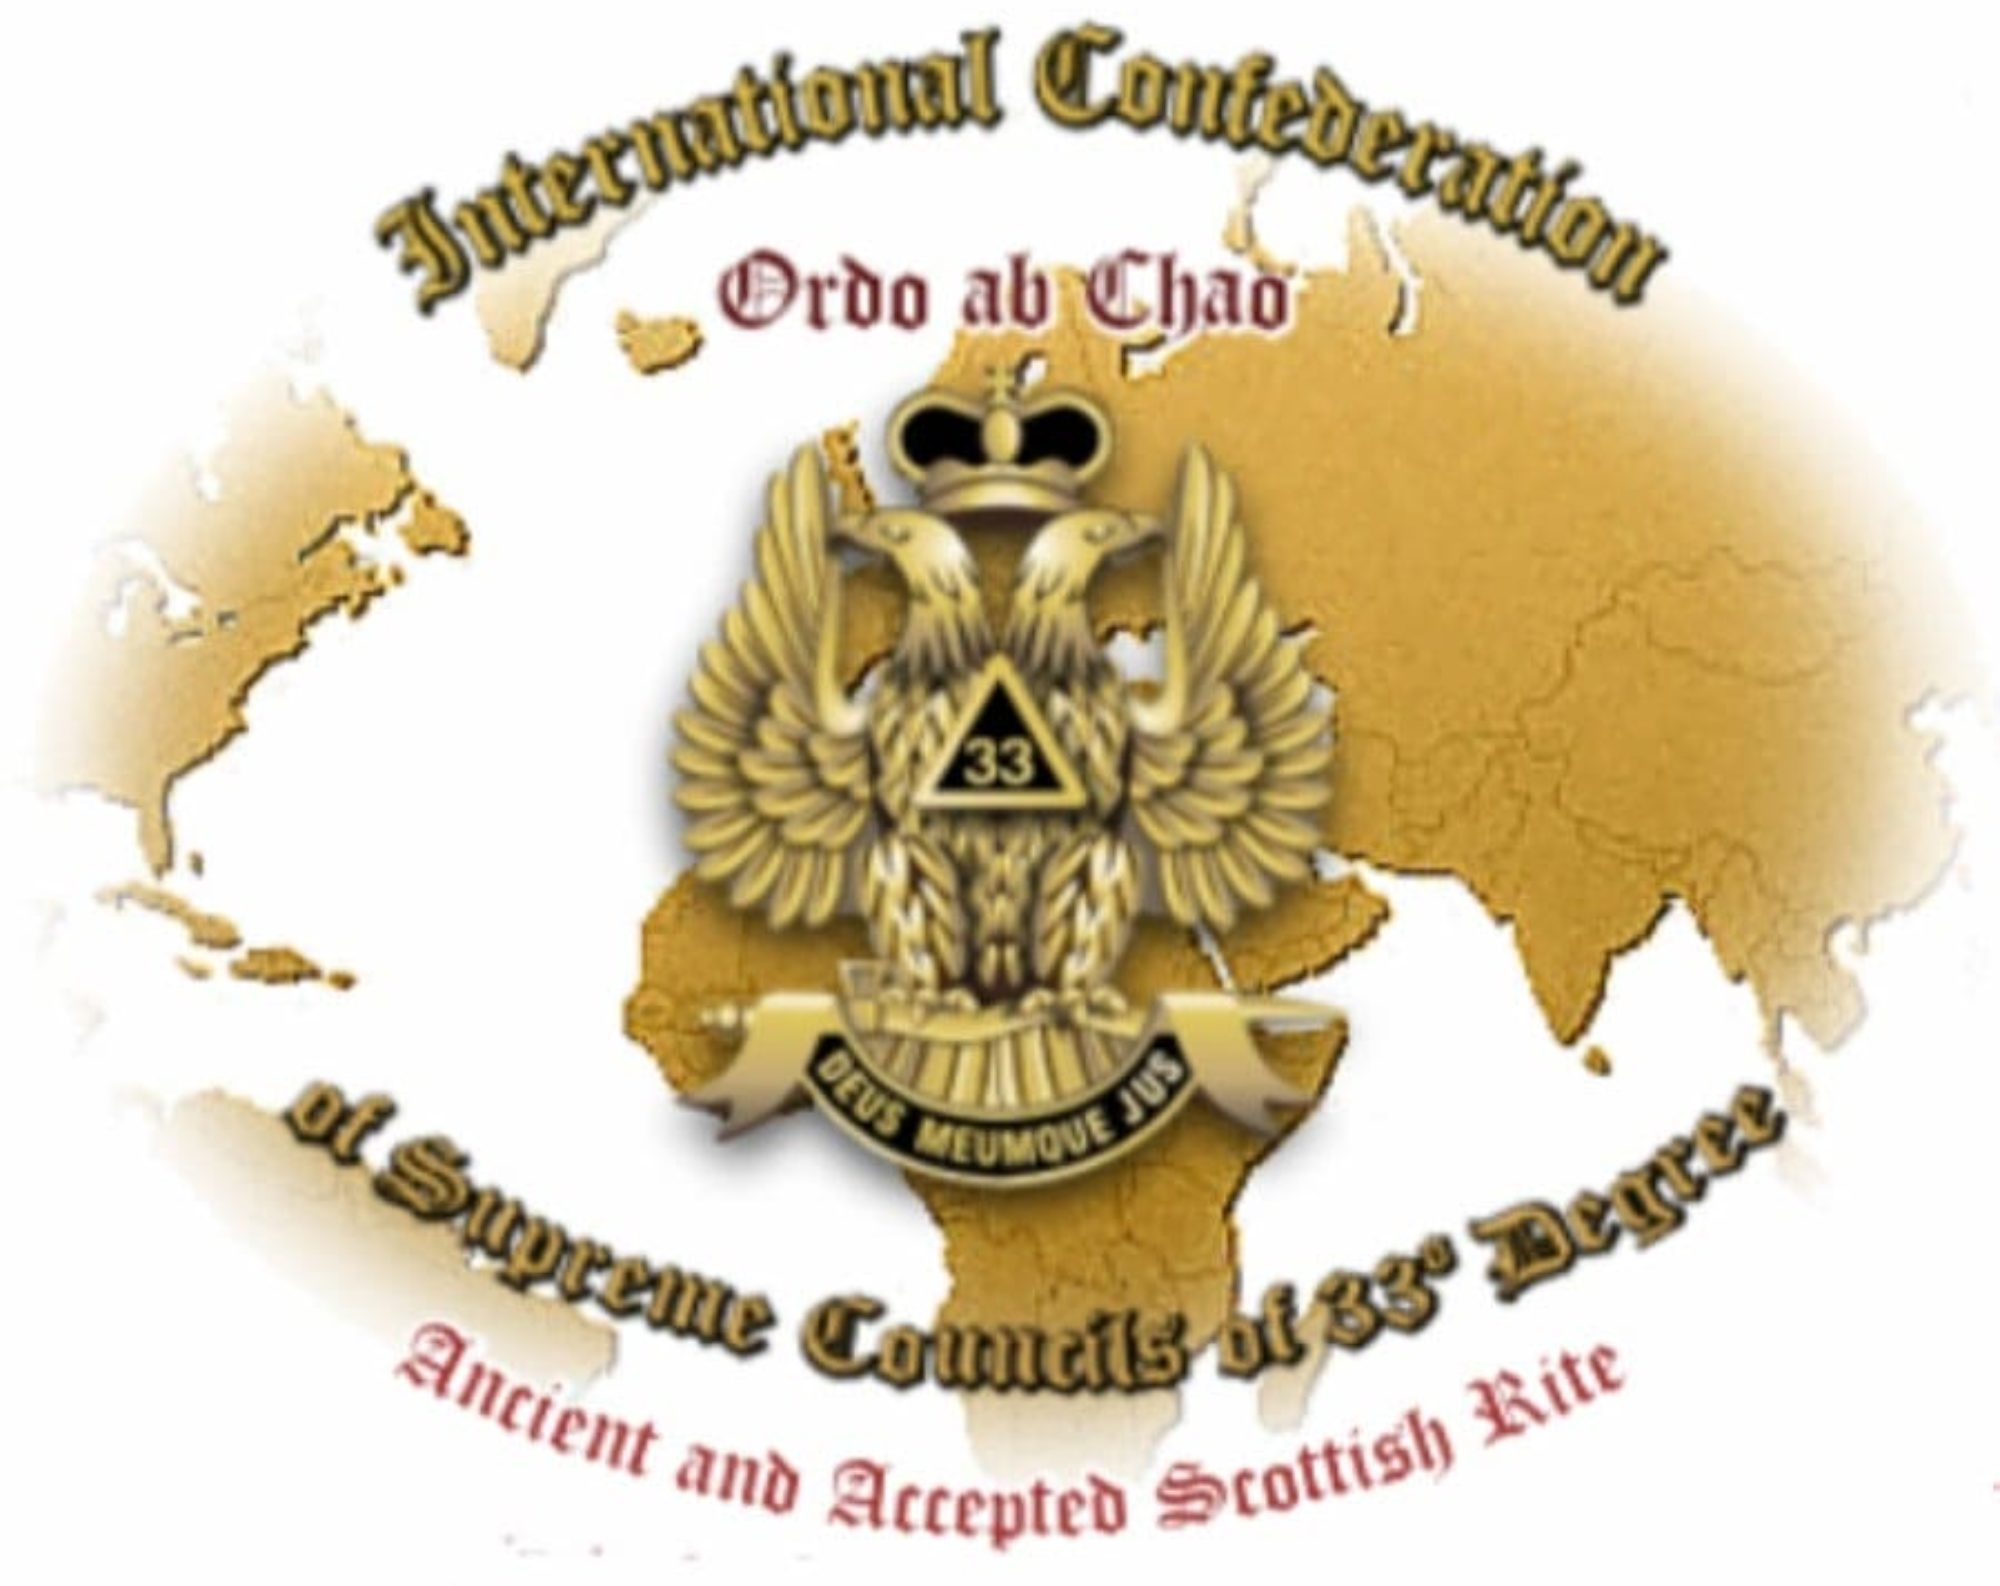 International Confederation